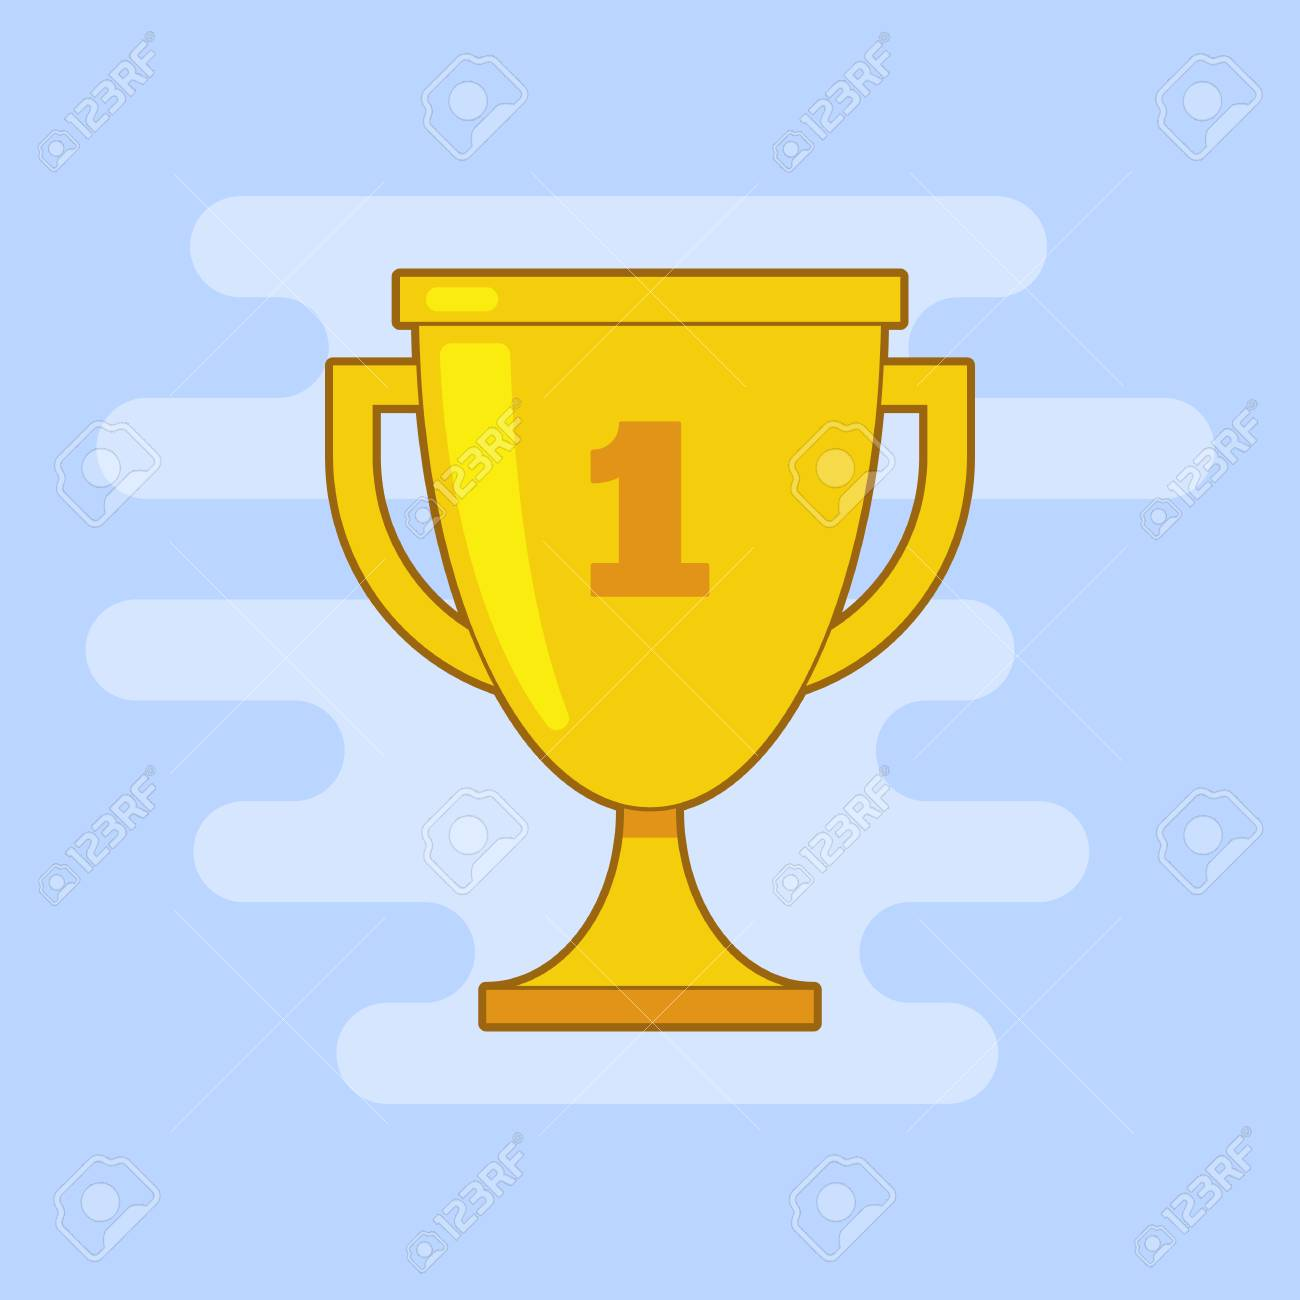 Trophy Cup Vector Flat Icon With Outline And Number One On Light Blue Background Stock